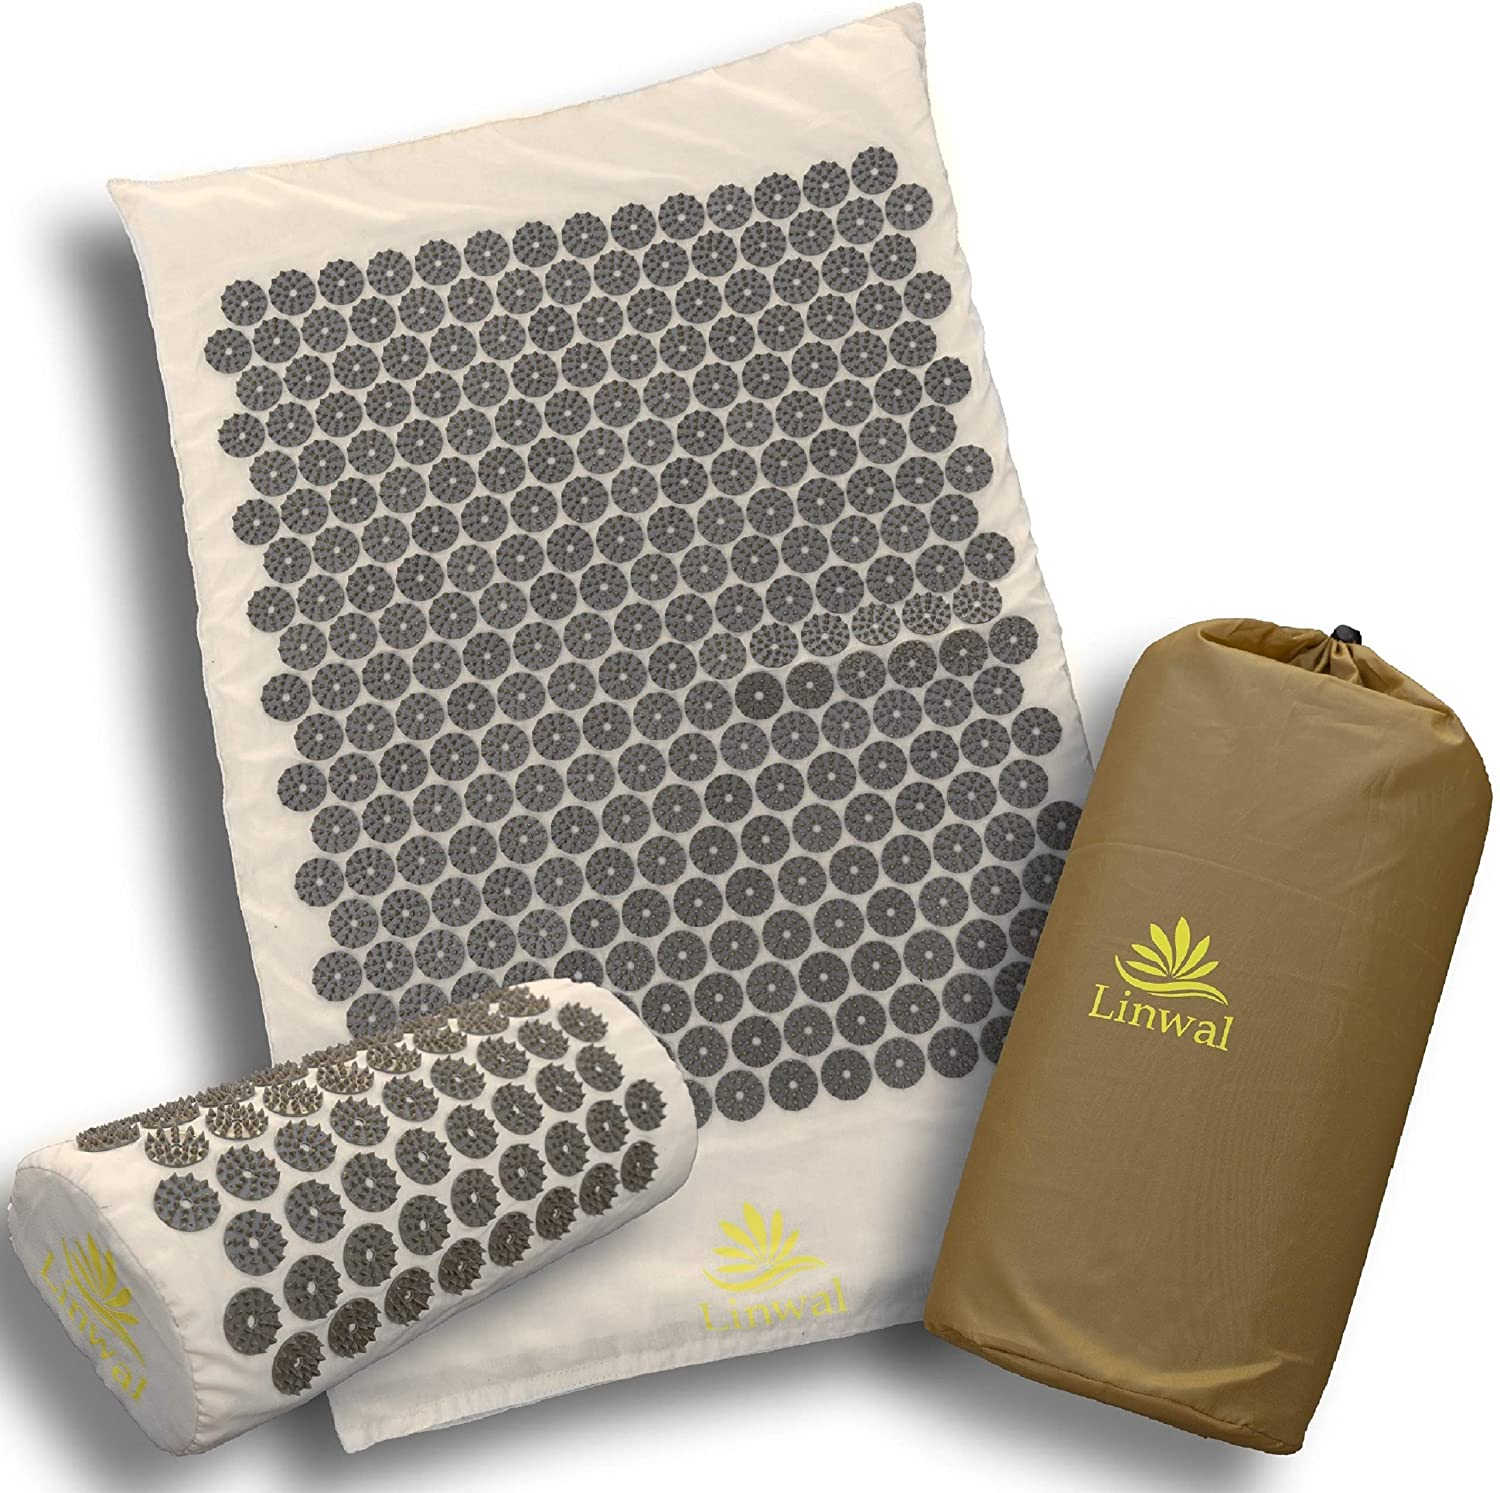 6. Linwal Acupressure Mat Large with Extra Acupuncture Points